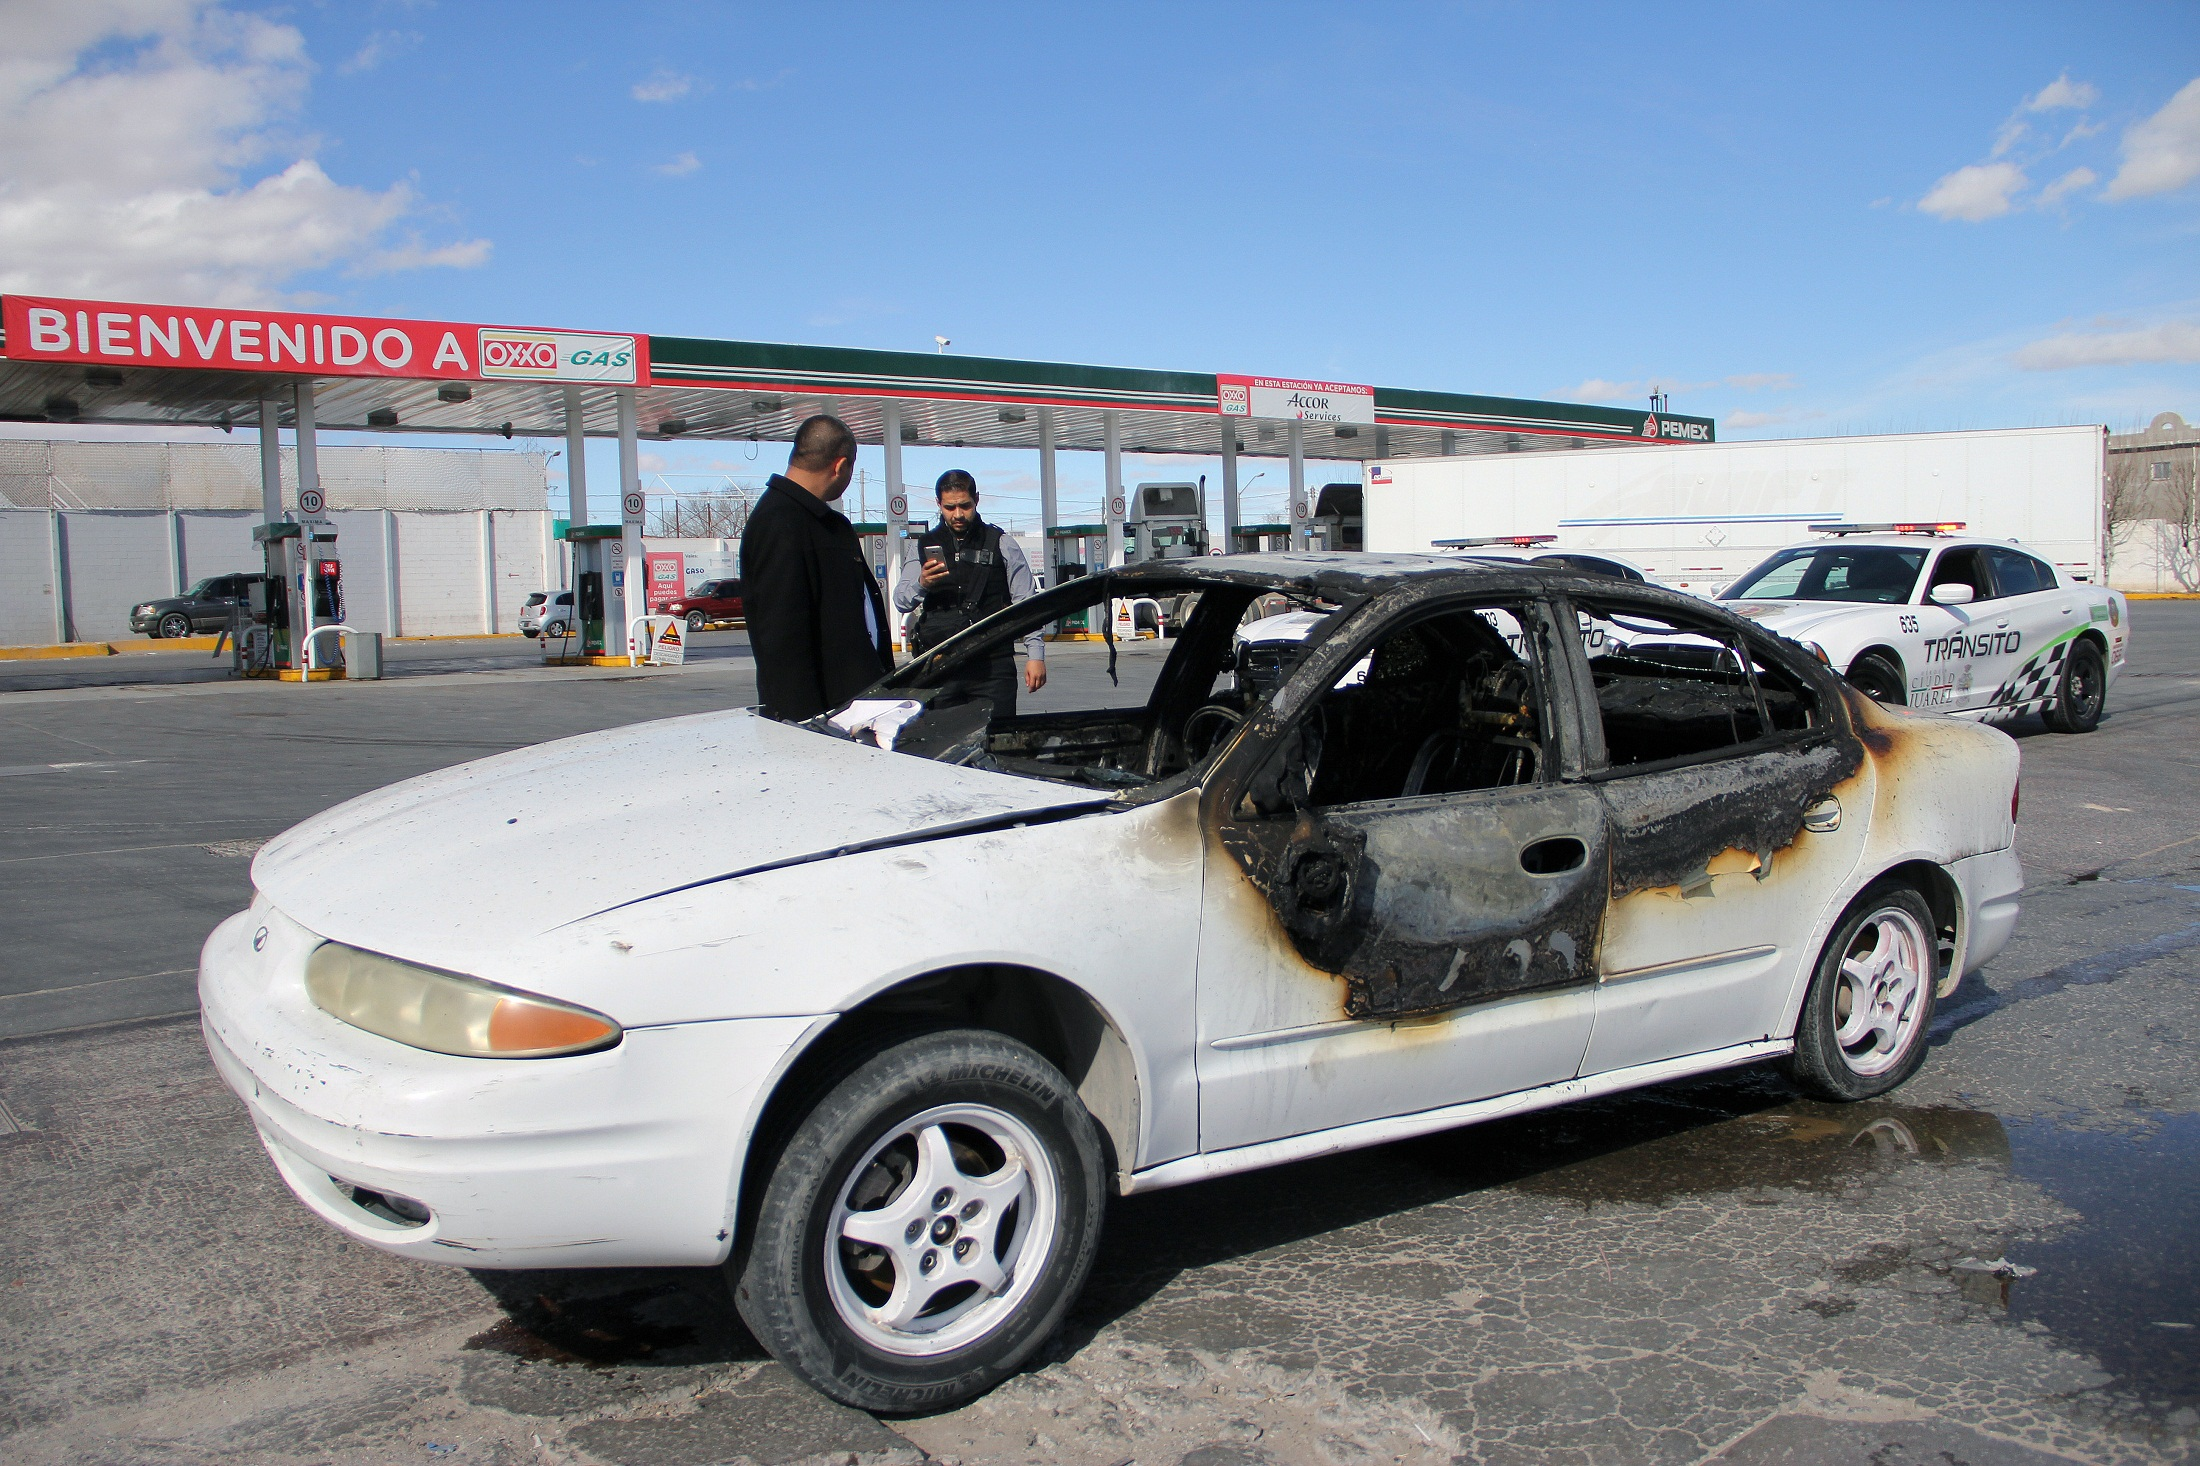 View of a burnt car in front of a gas station after a protest against the fuel price hikes in Ciudad Juarez, Chihuahua state, Mexico, on January 20, 2017.  On January 1, 2017 fuel prices in Mexico went up 20.1% for gasoline and 16.5% for diesel.  / AFP PHOTO / HERICKA MARTINEZ